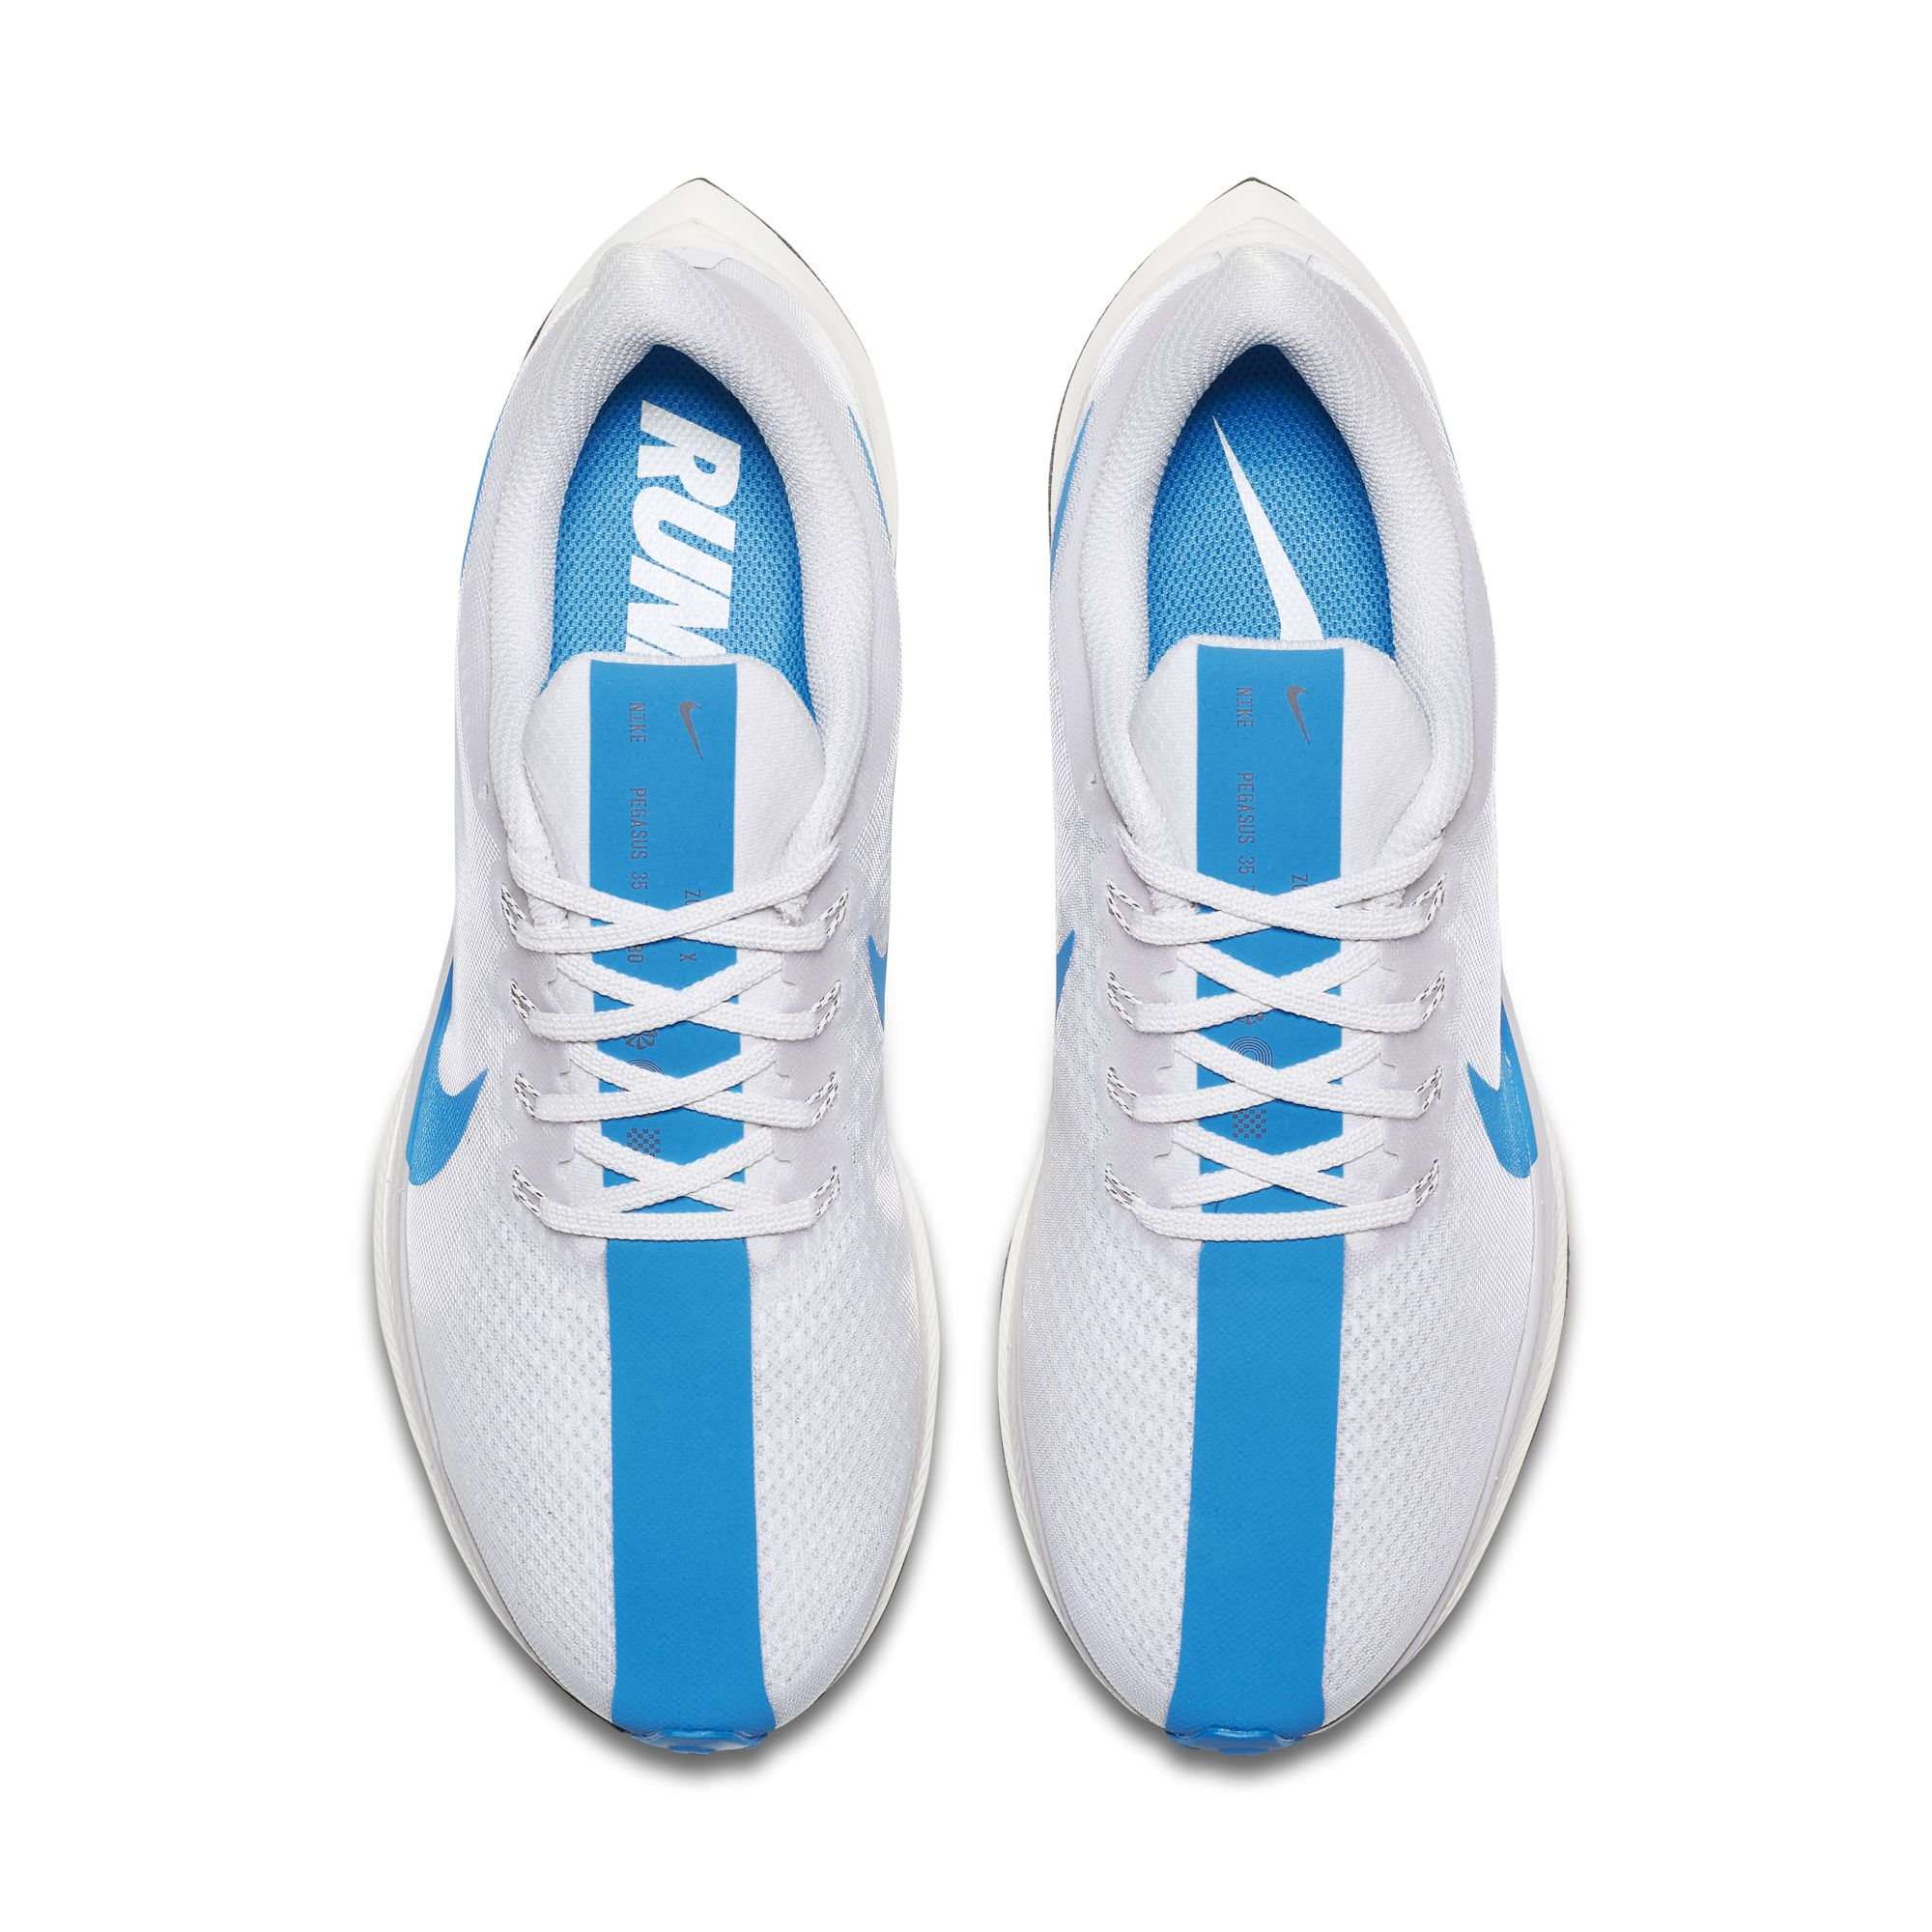 new arrival 62f2e c8c49 The Clean Nike Zoom Pegasus Turbo 'Blue Hero' is Dropping ...